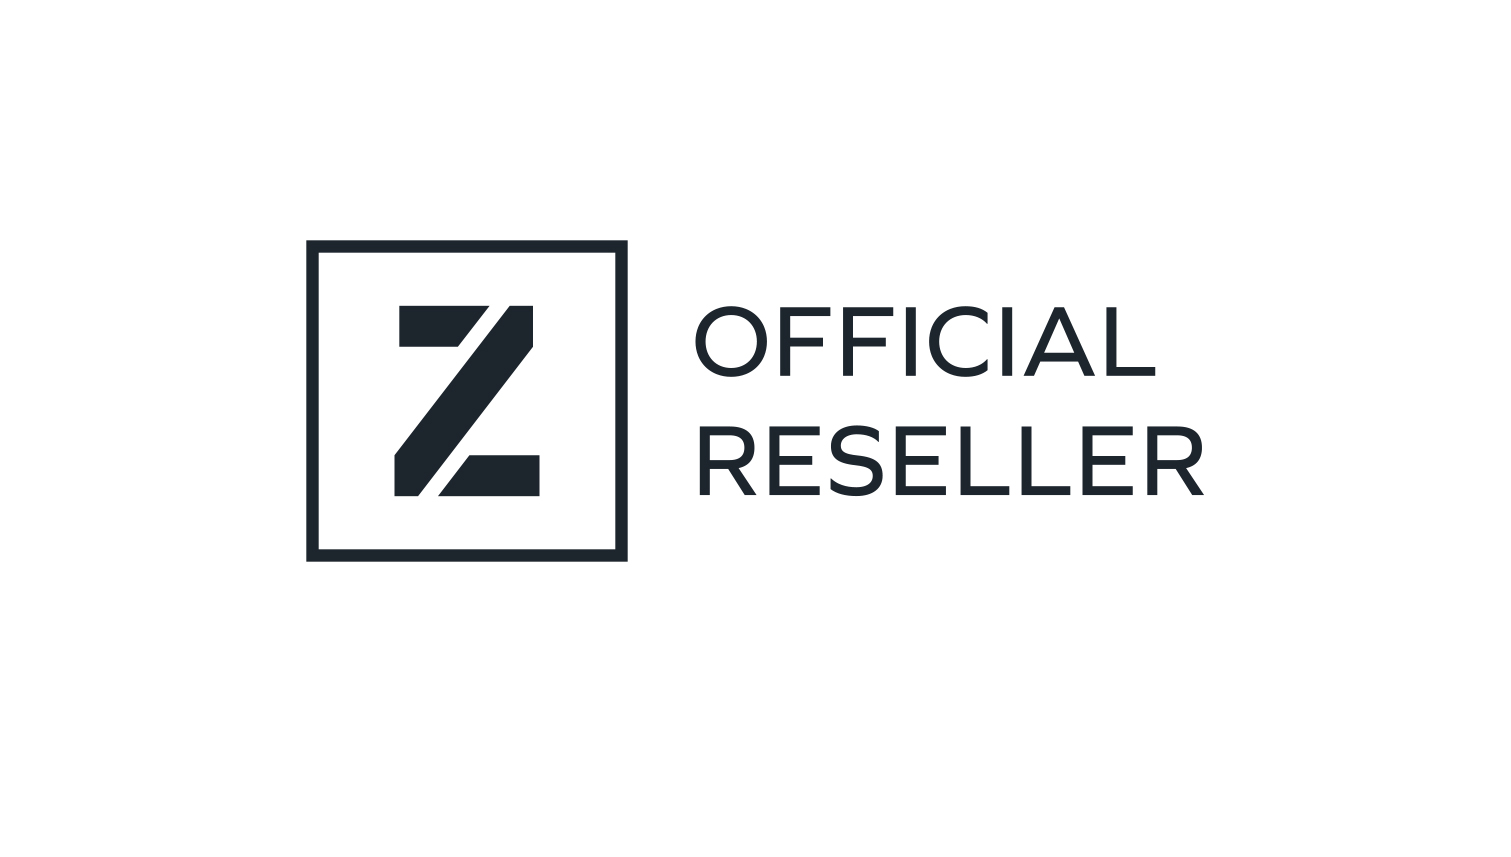 ZORTRAX officialresellermark